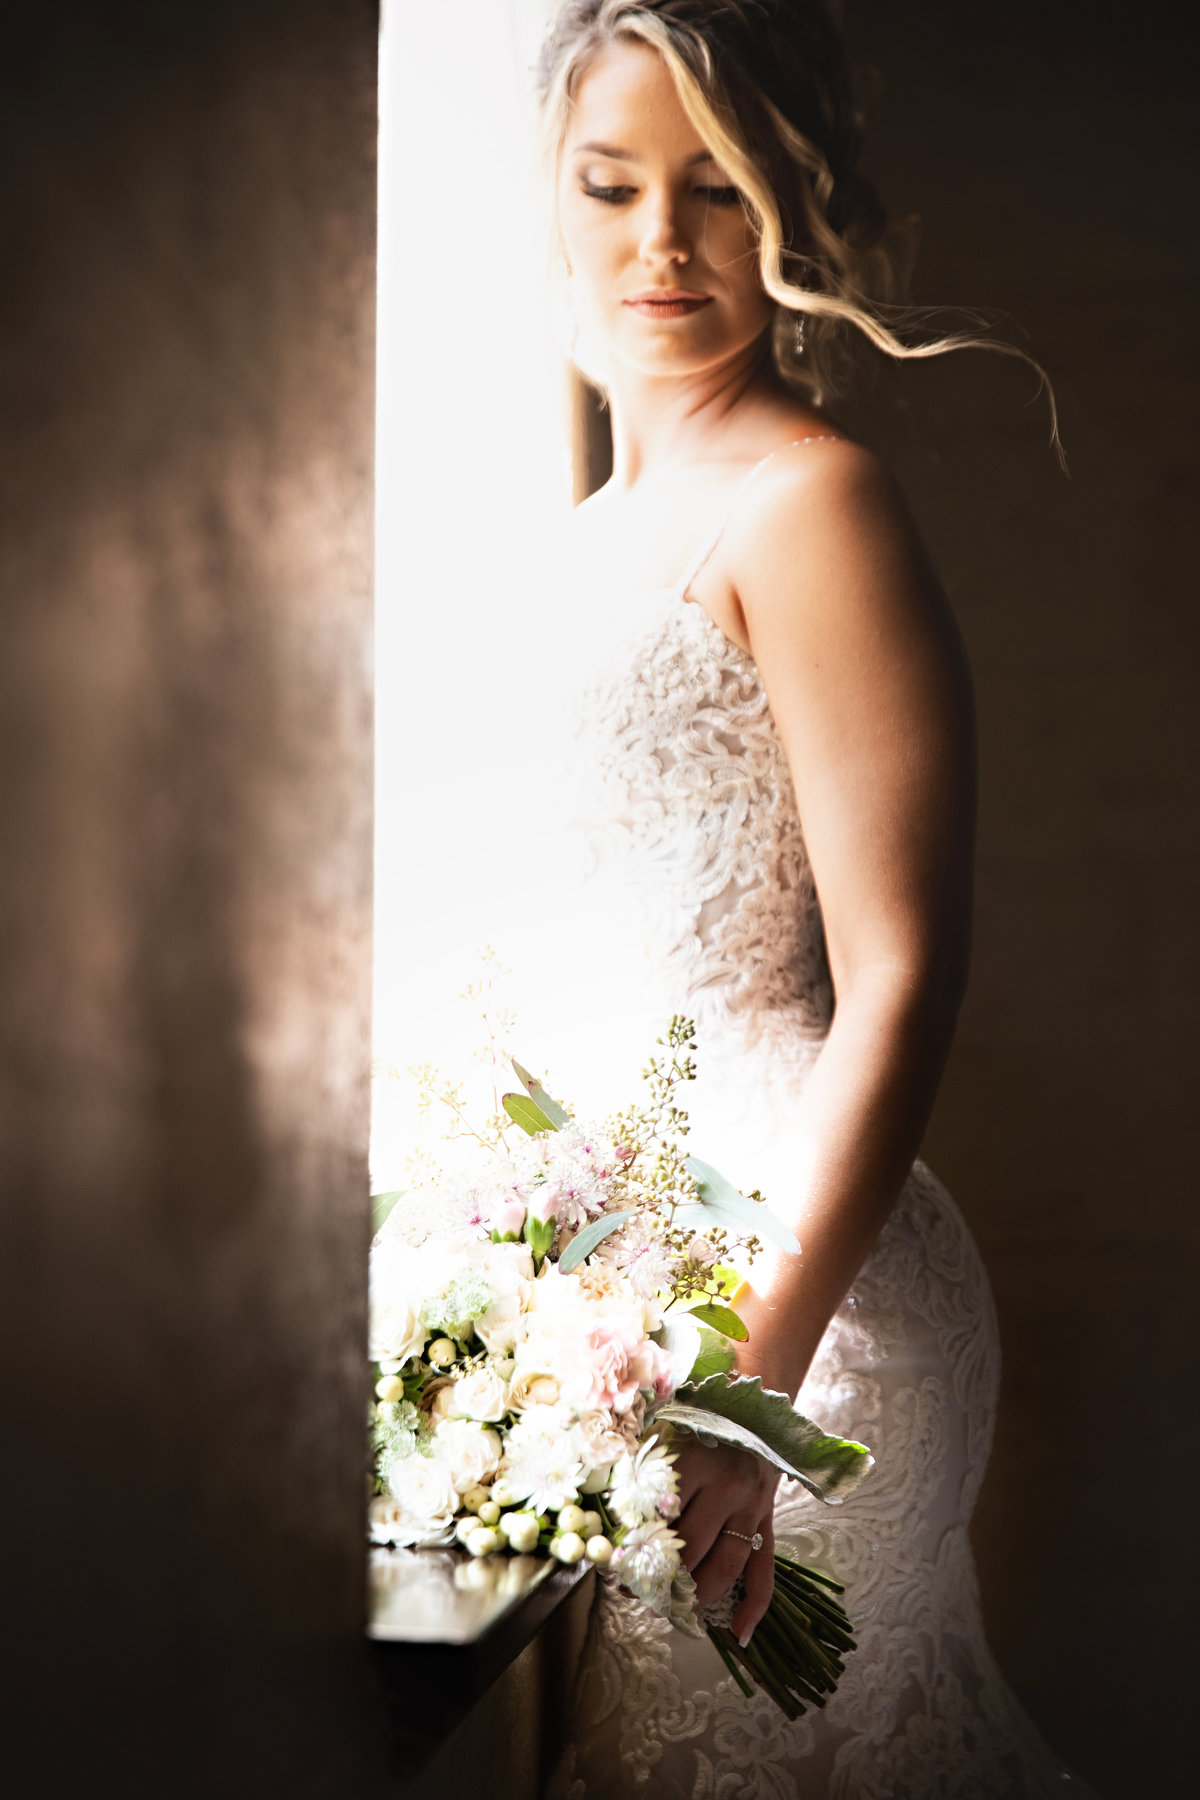 A picture of the bride in her beautiful wedding gown standing next to a window, looking down at her bouquet, as the sunlight shines in on her